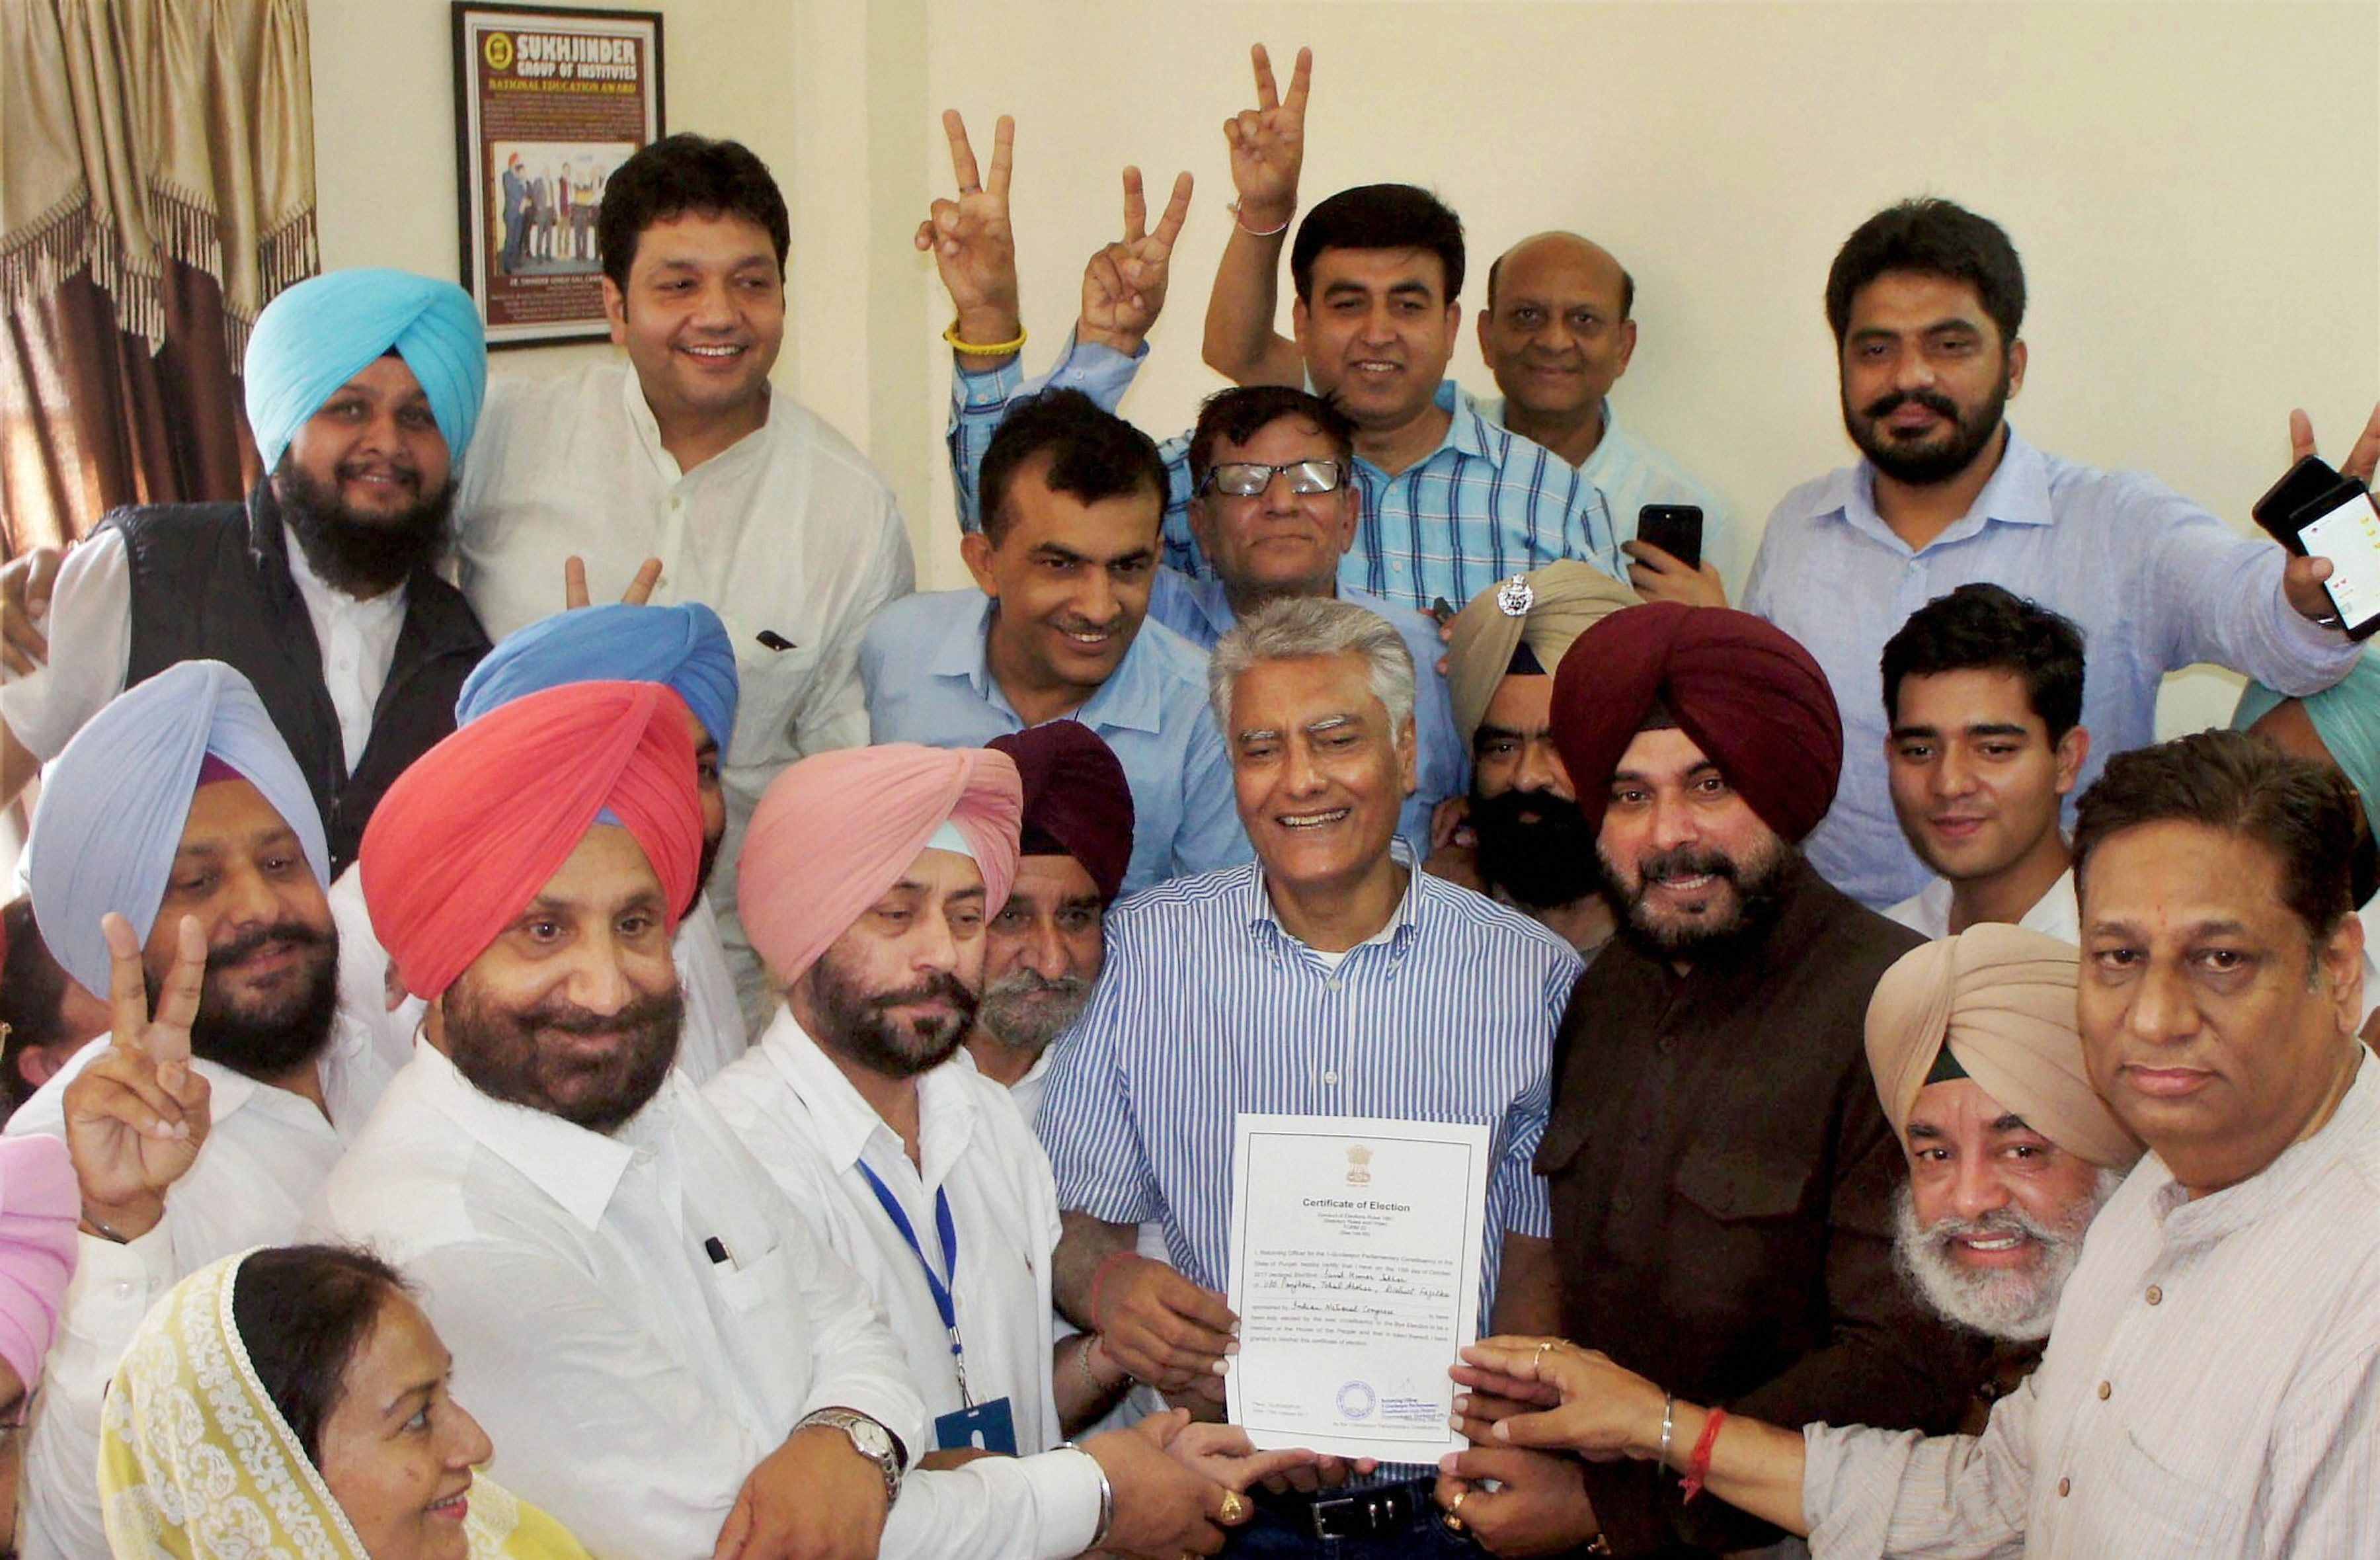 Gurdaspur: Punjab Congress president Sunil Jakhar with State Cabinet minister Navjot Singh Sidhu and other party leaders showing his victory certificate as he celebrates after winning the Gurdaspur parliamentary bypoll, in Gurdaspur on Sunday. PTI Photo (PTI10_15_2017_000046B)